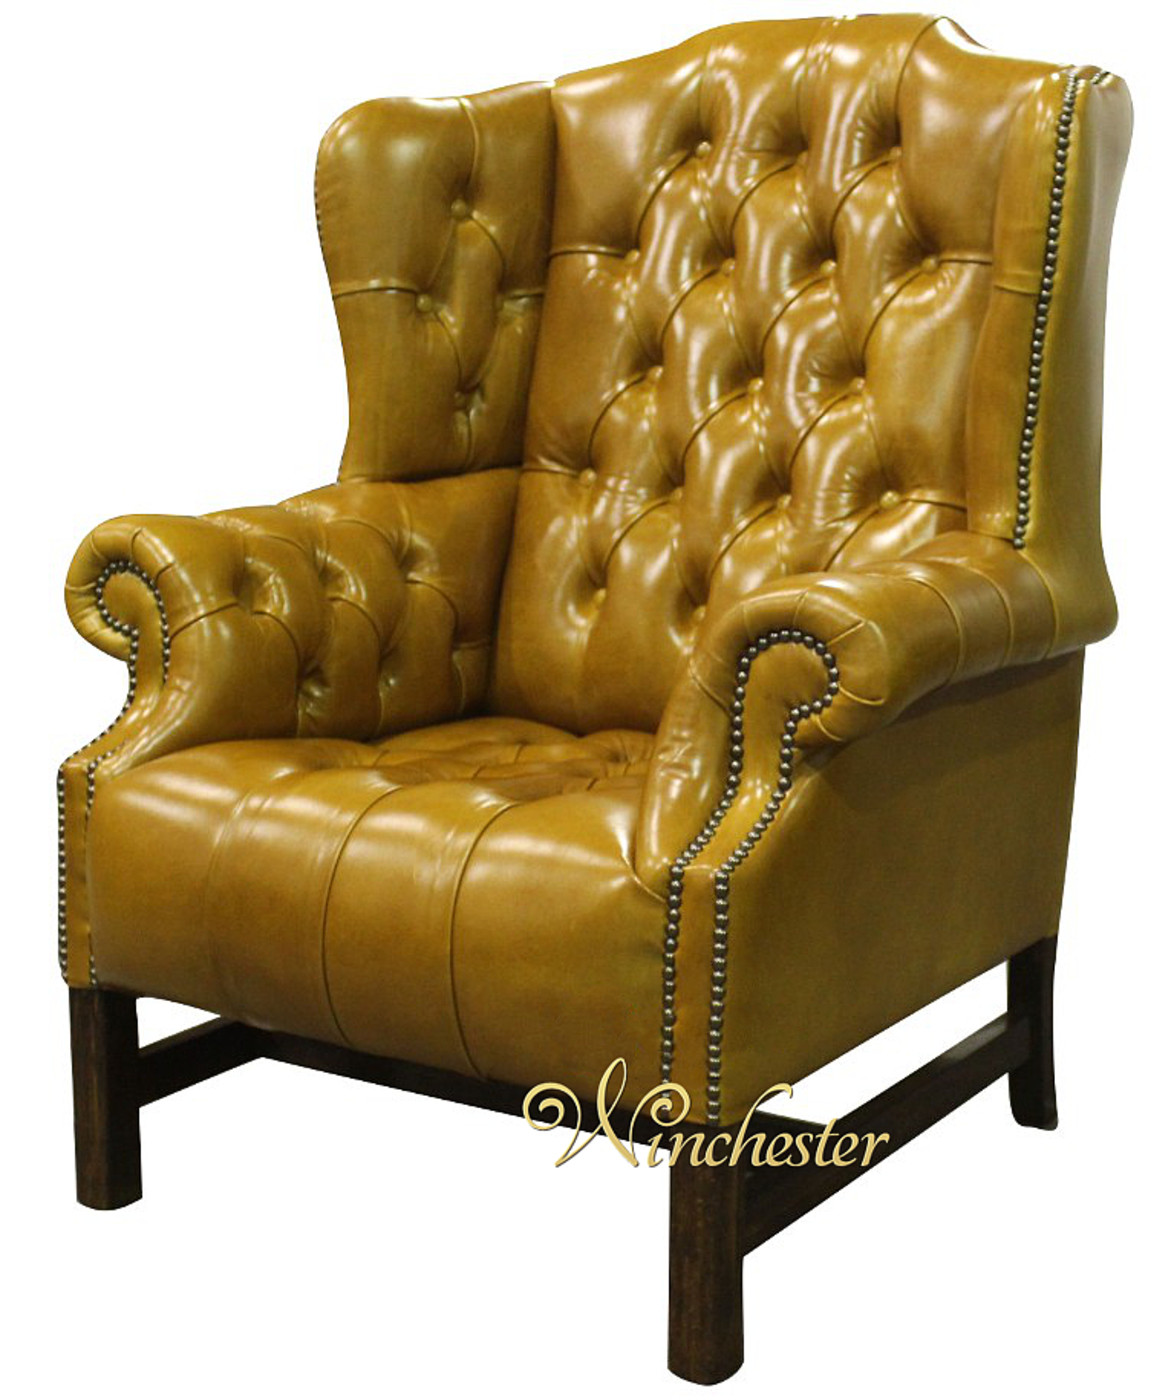 ... Chesterfield Churchill Winged Back Chair Spice Leather Wc